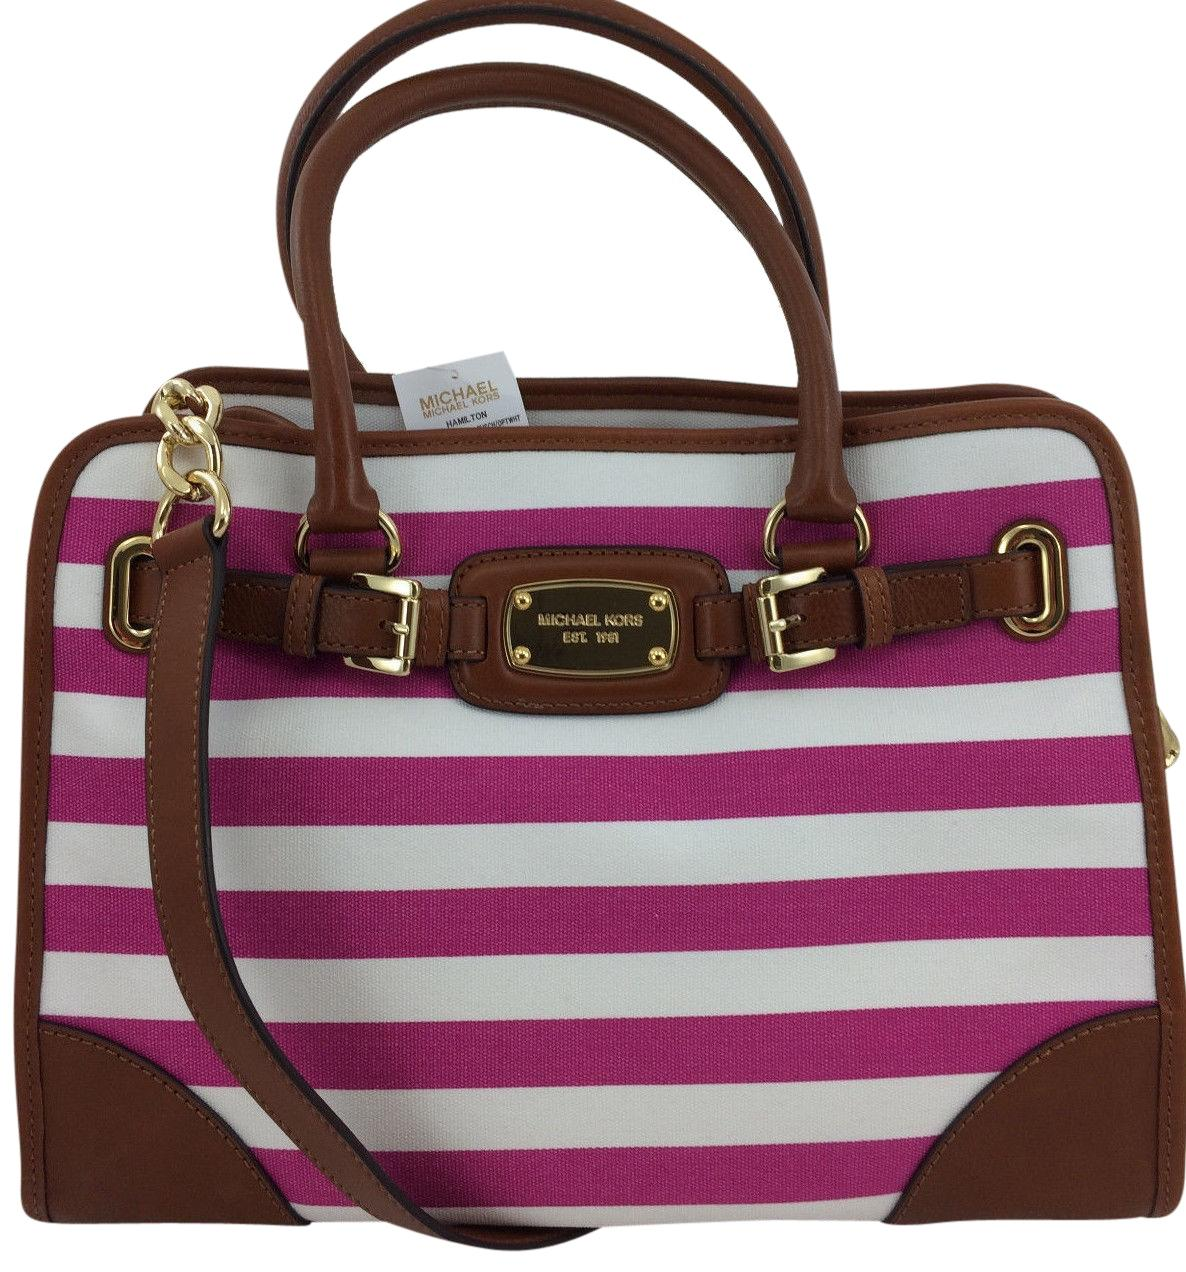 1fdf73e510ca ... shopping michael kors convertible shoulder east west hot pink tote in  fuchsia and white striped 2c0f5